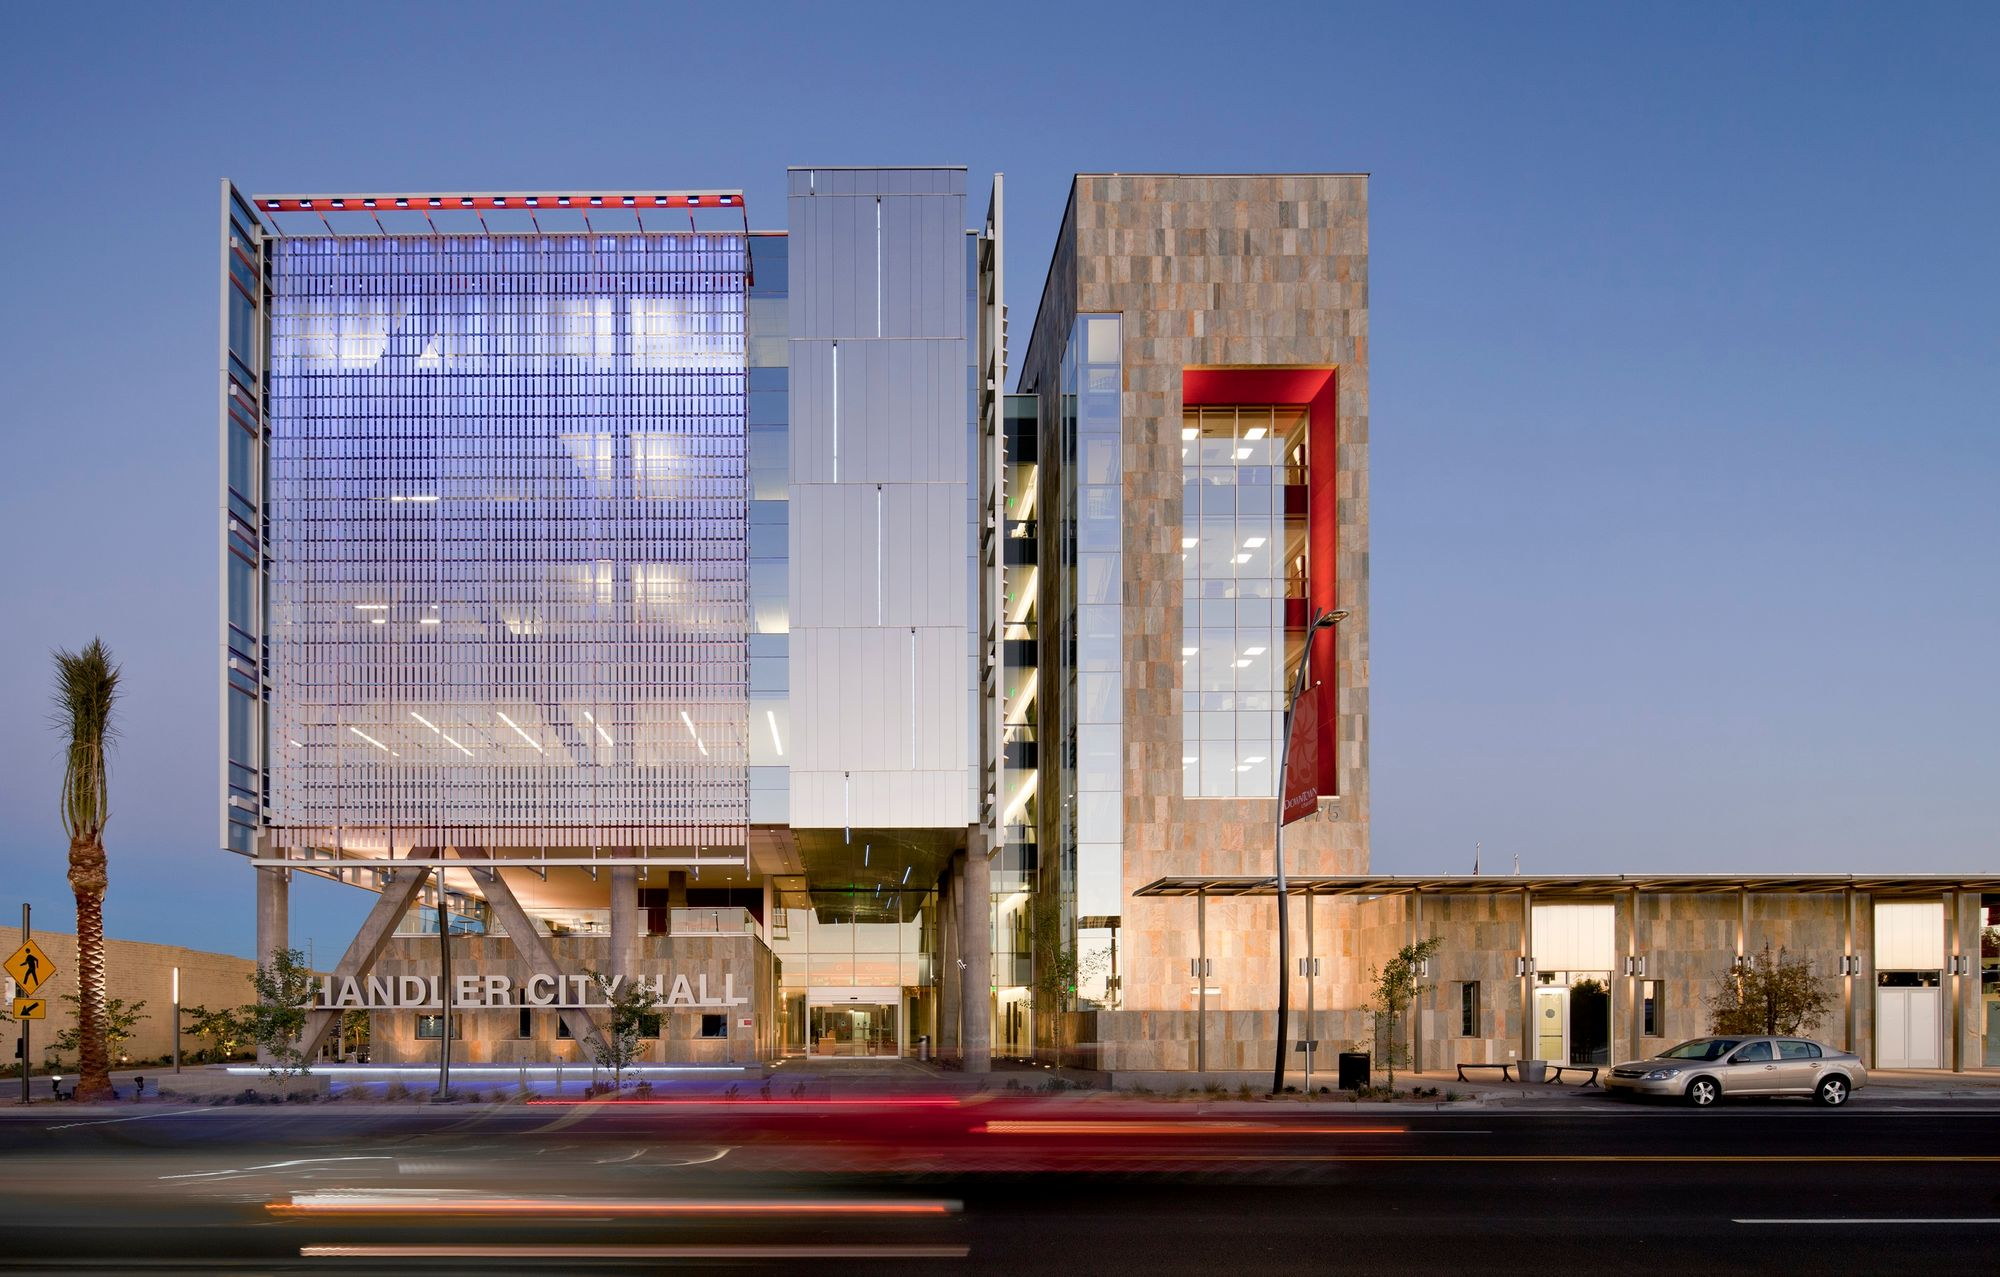 a large perforated metal facade providing sun shade to the Arizona City Hall building